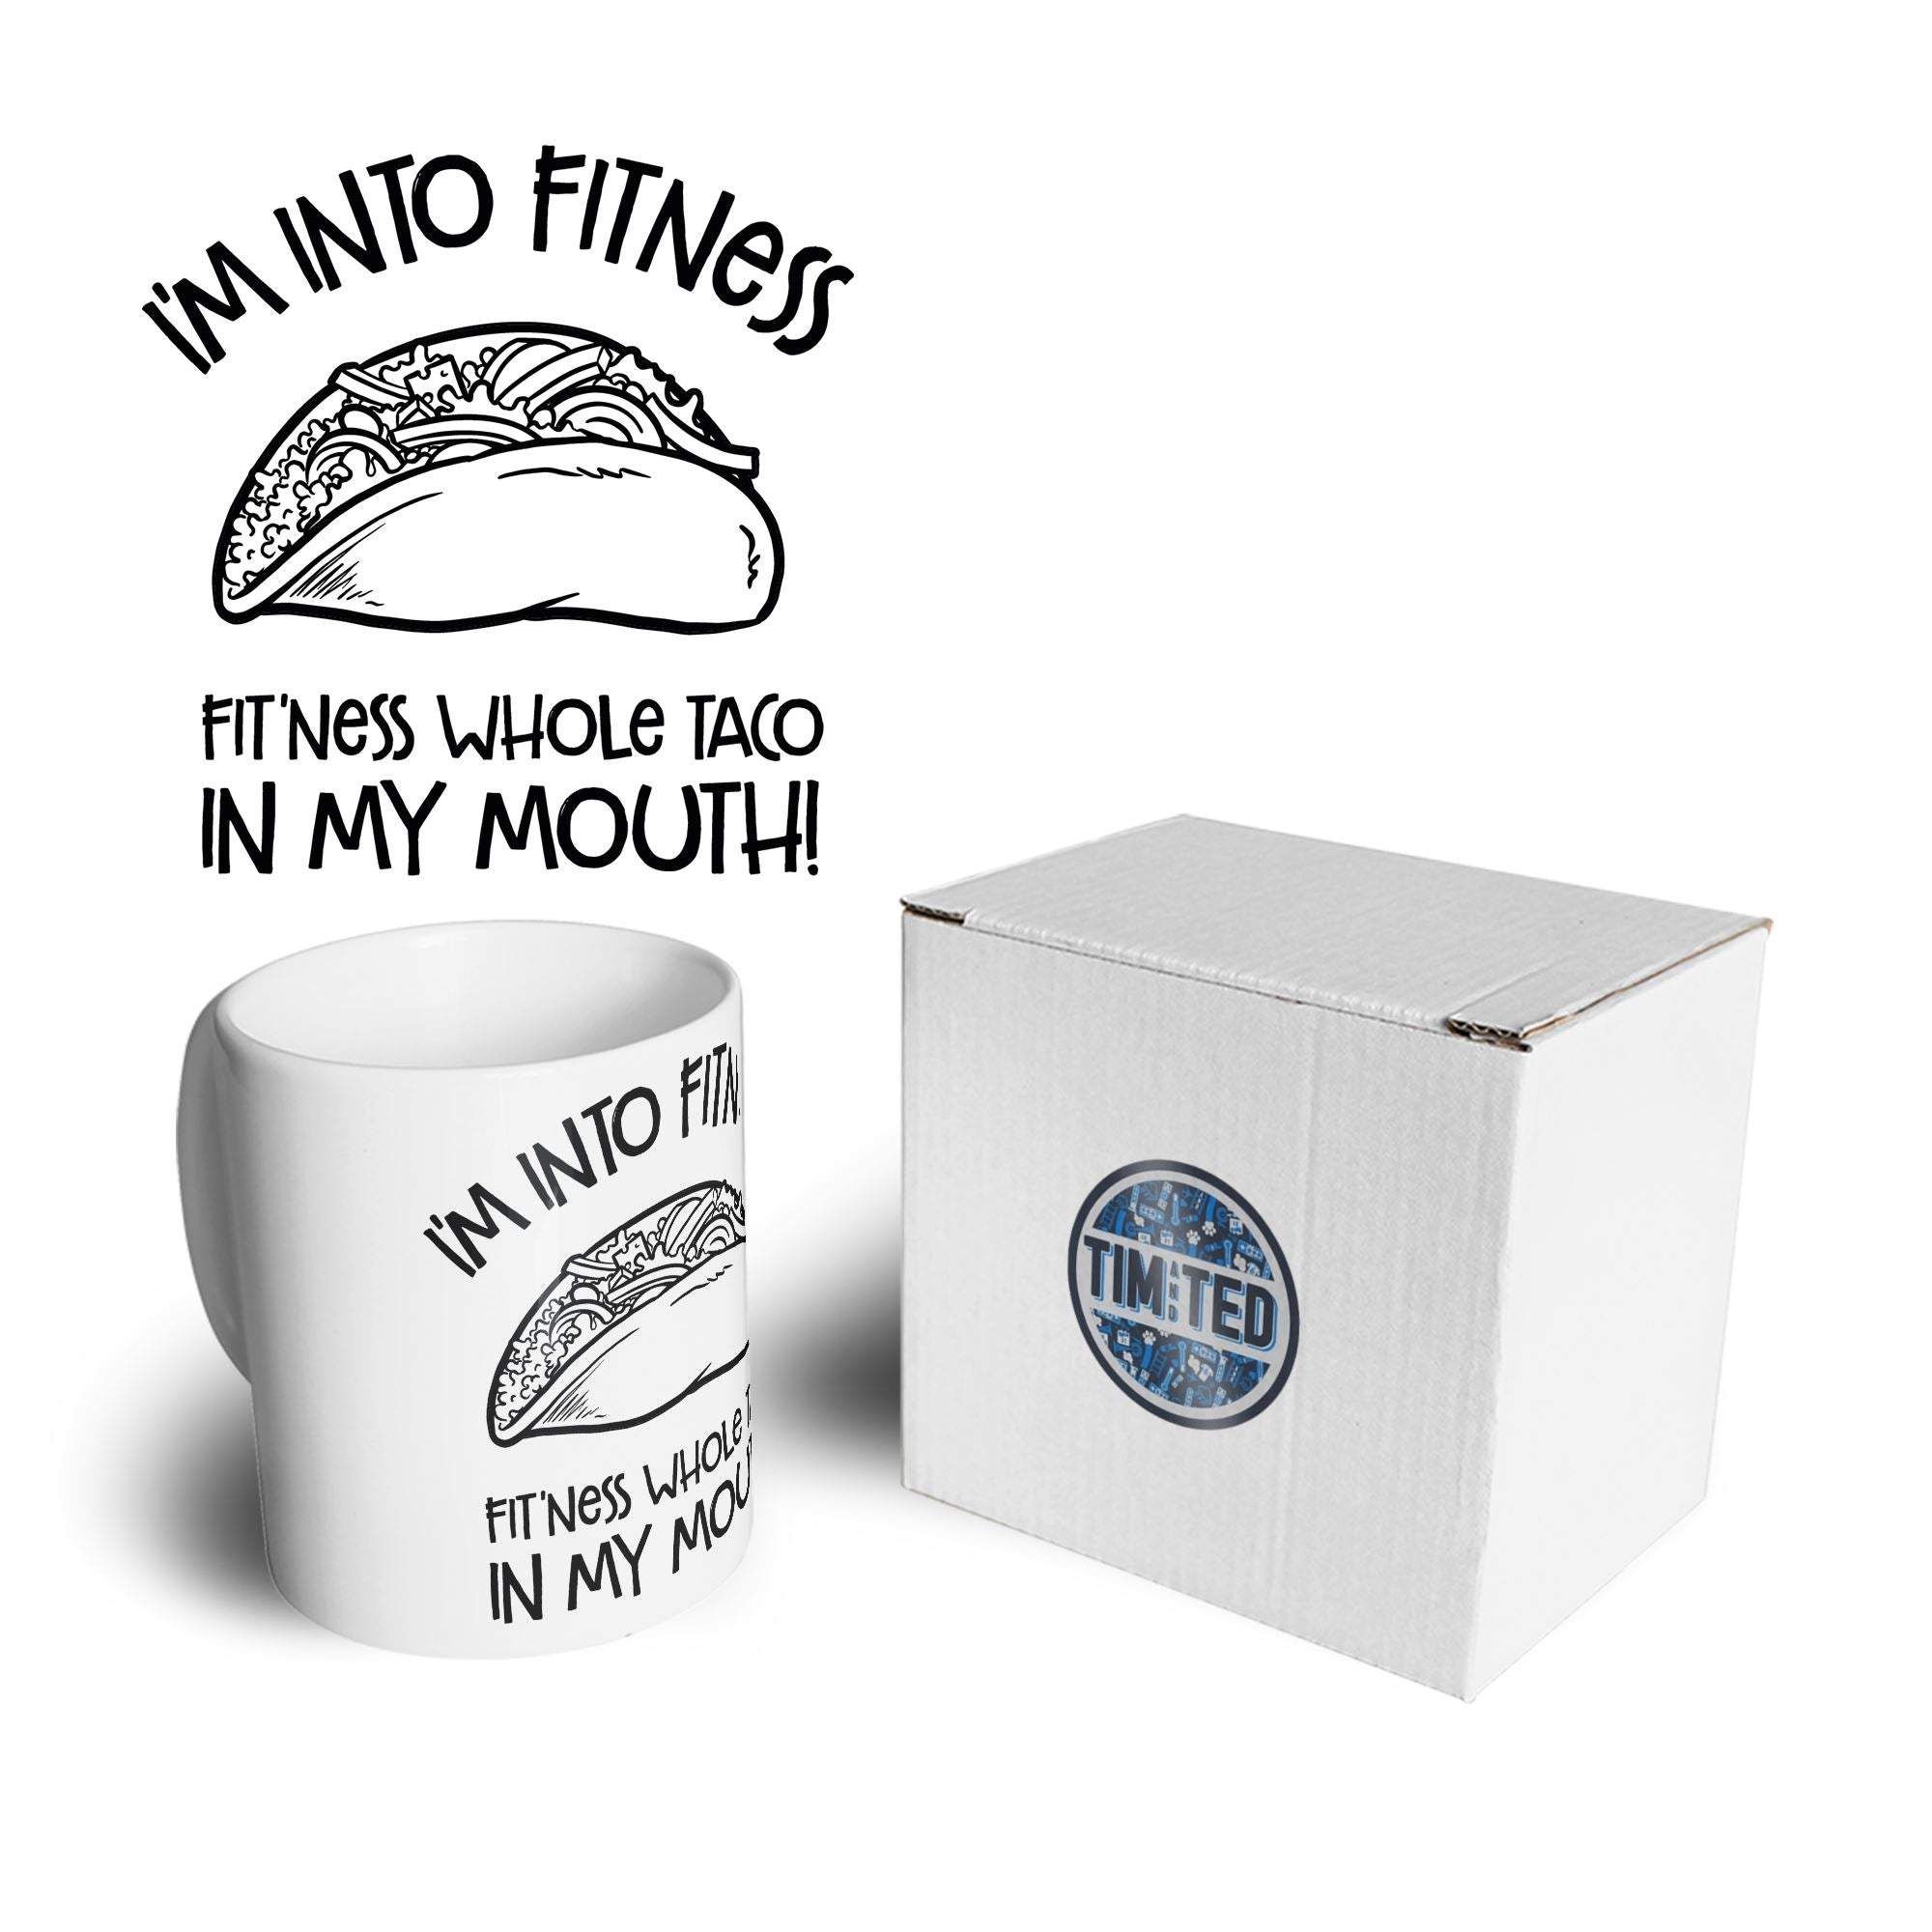 Funny Mug I'm Into Fitness Whole Taco In My Mouth Coffee Tea Cup